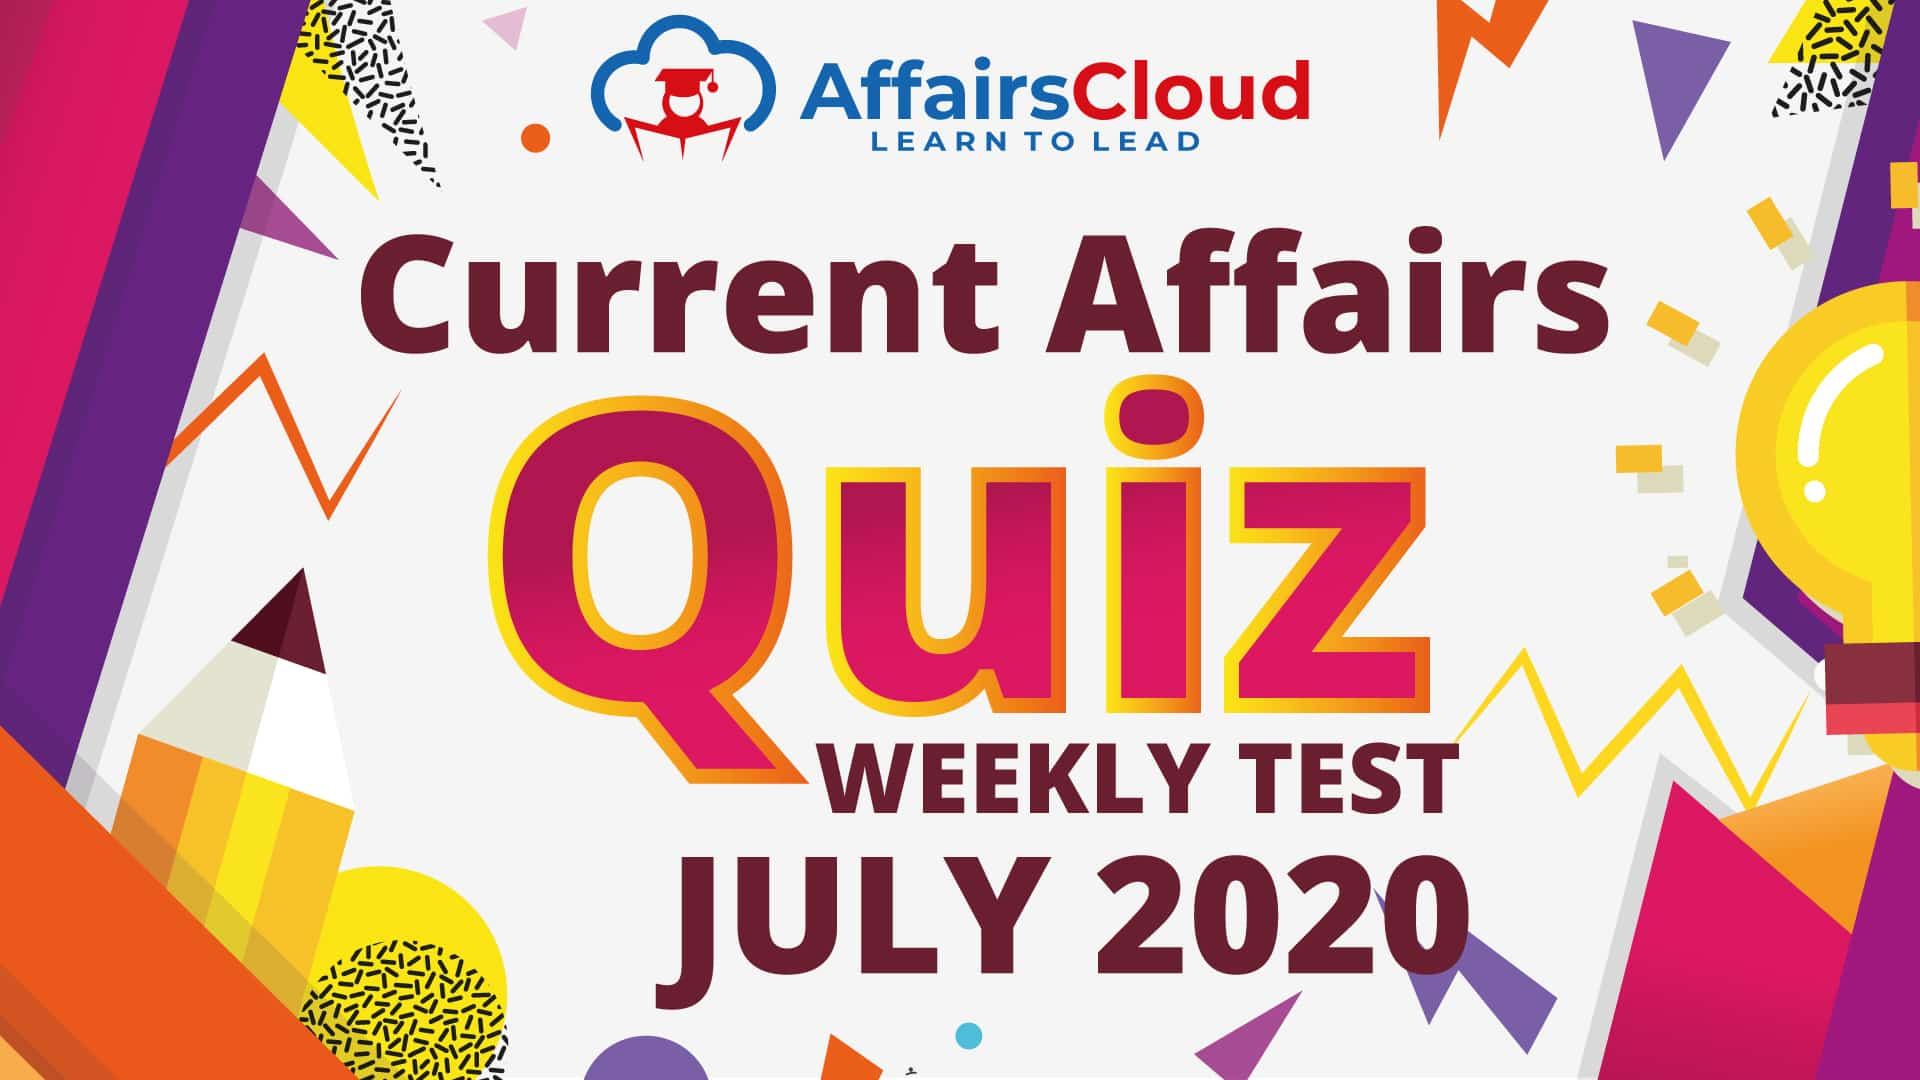 Current Affairs Weekly Test July 2020